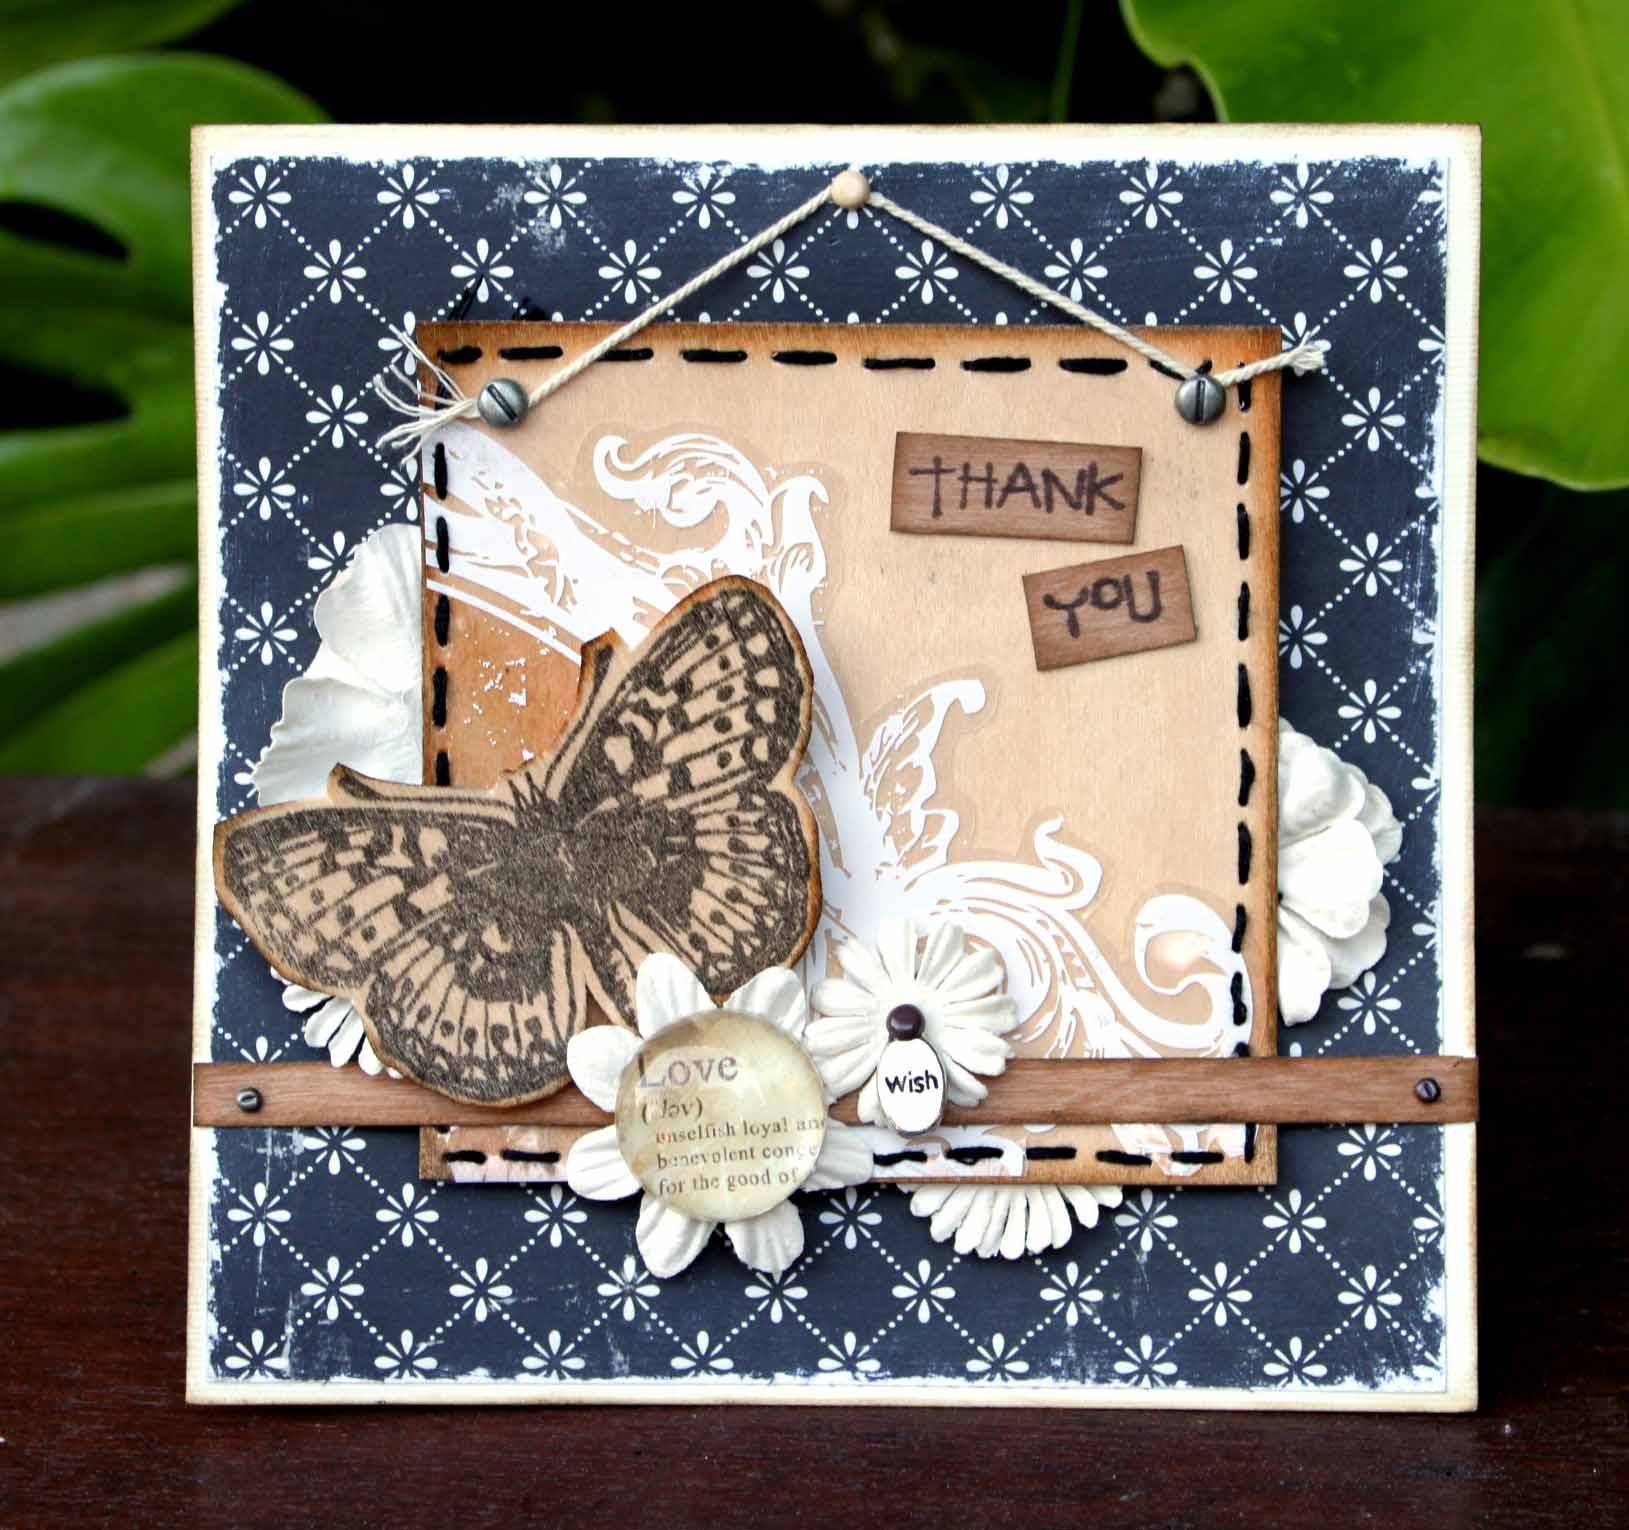 Sharon Ong - Thank You Butterfly Card